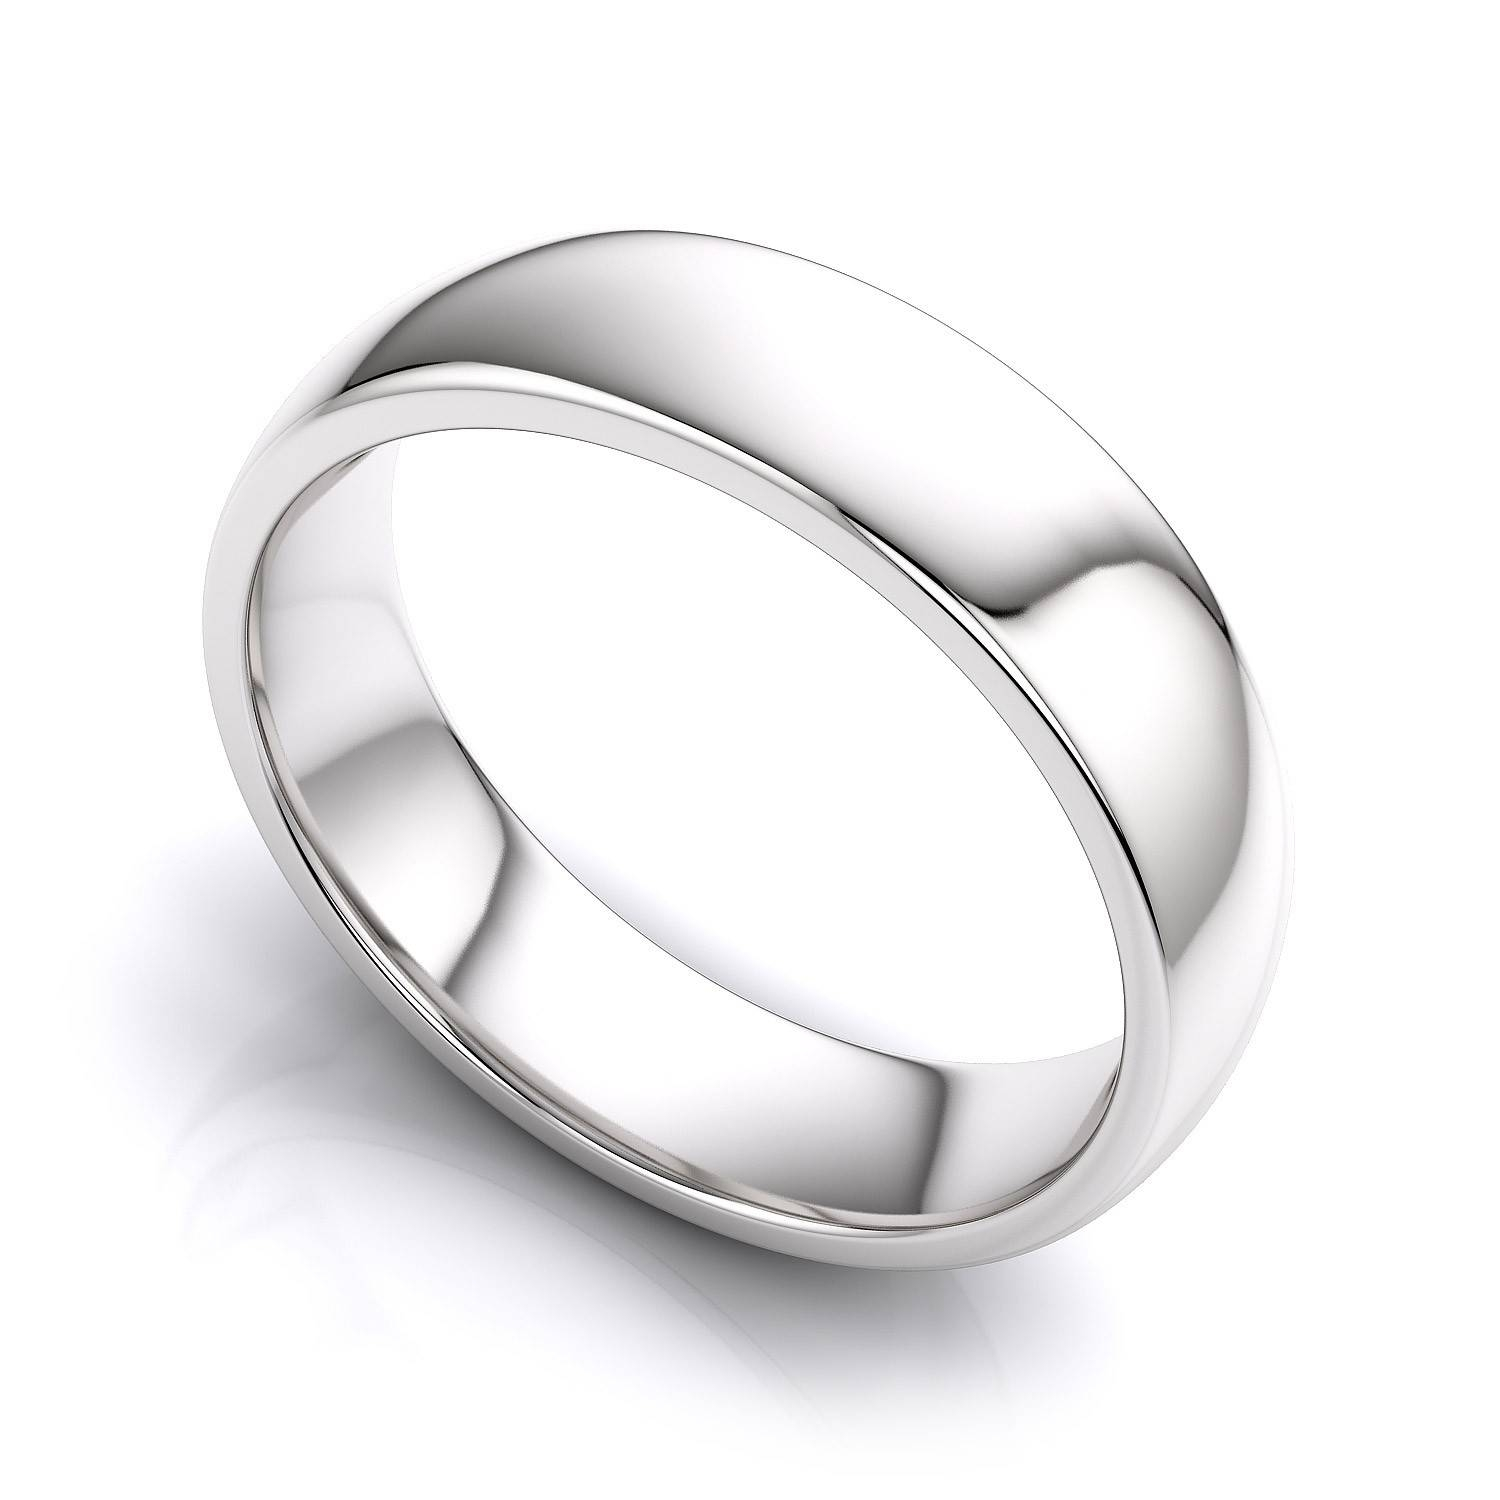 5Mm Comfort Fit Mens Plain Wedding Band In 14K White Gold Intended For White Gold Wedding Bands For Him (View 2 of 15)